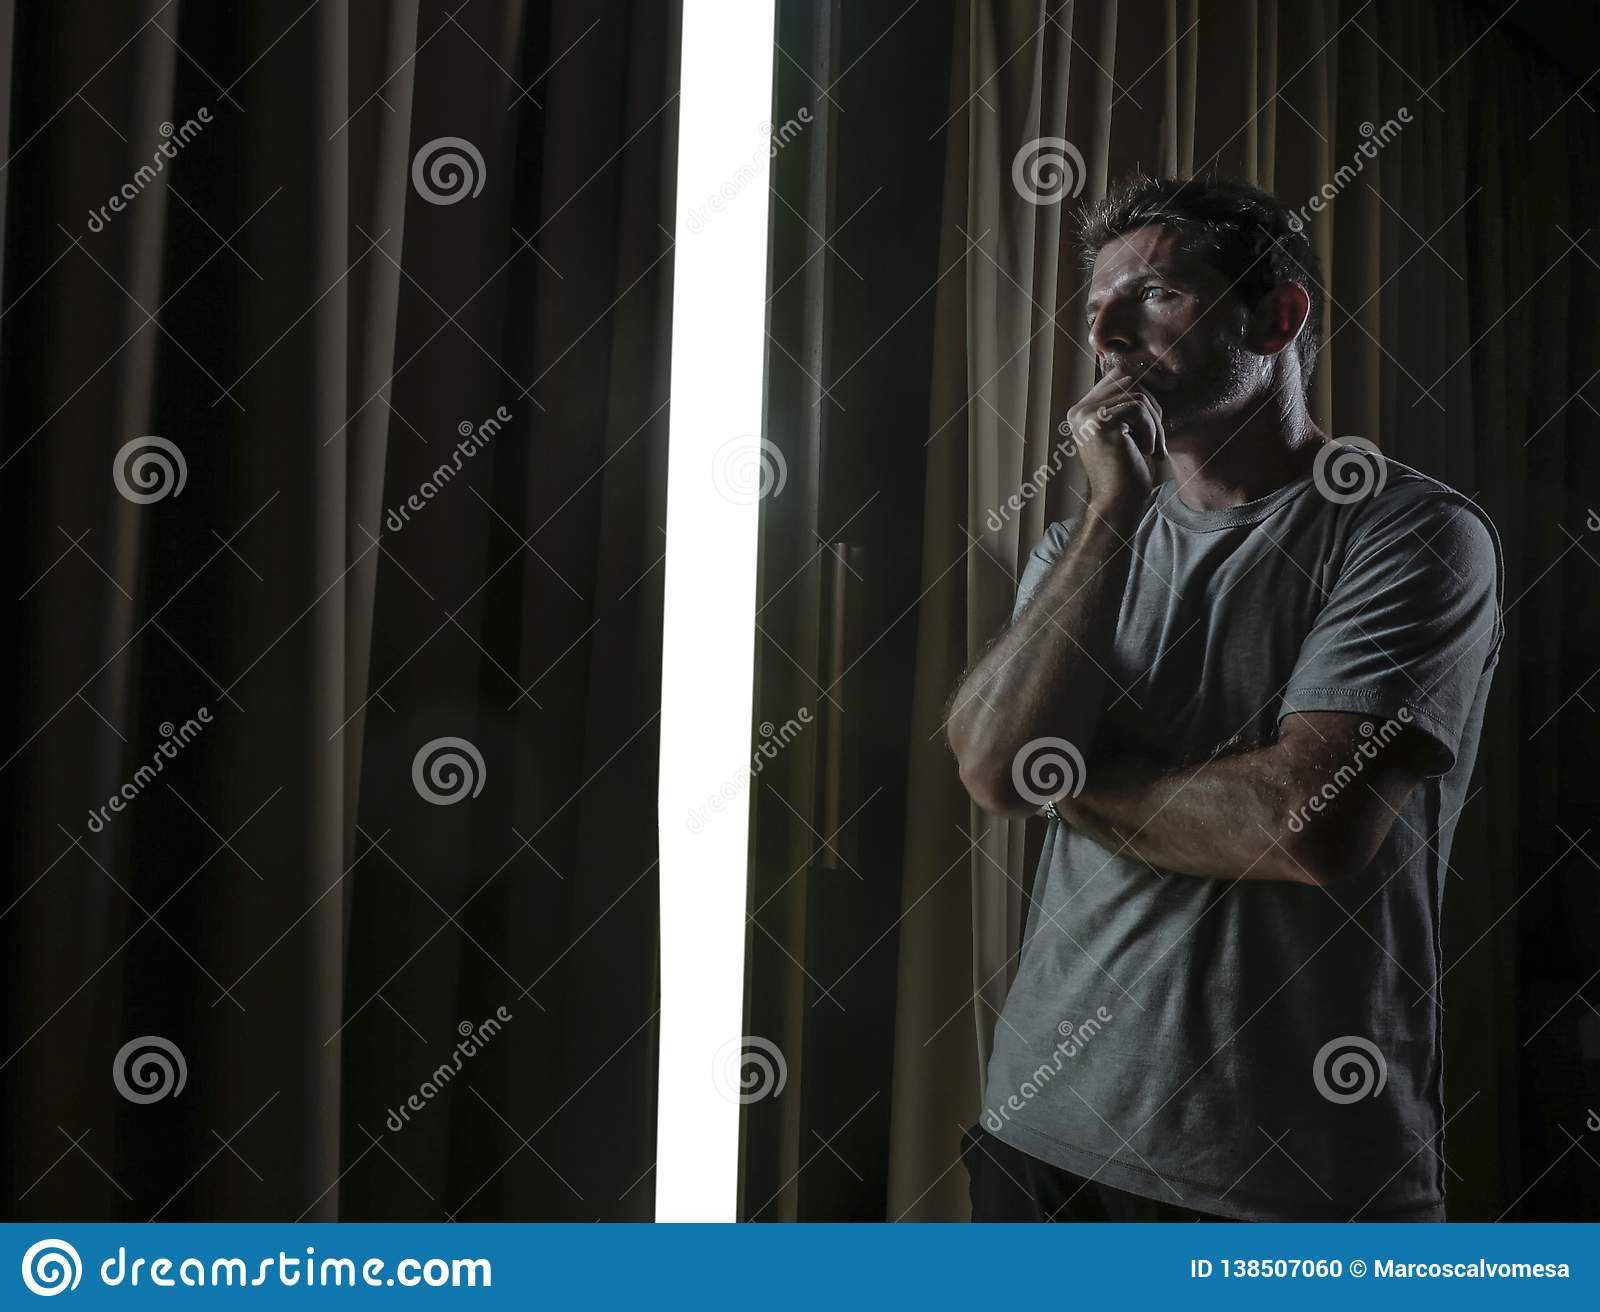 Dramatic light portrait of young sad and depressed attractive man at home looking through room window thoughtful and pensive lost